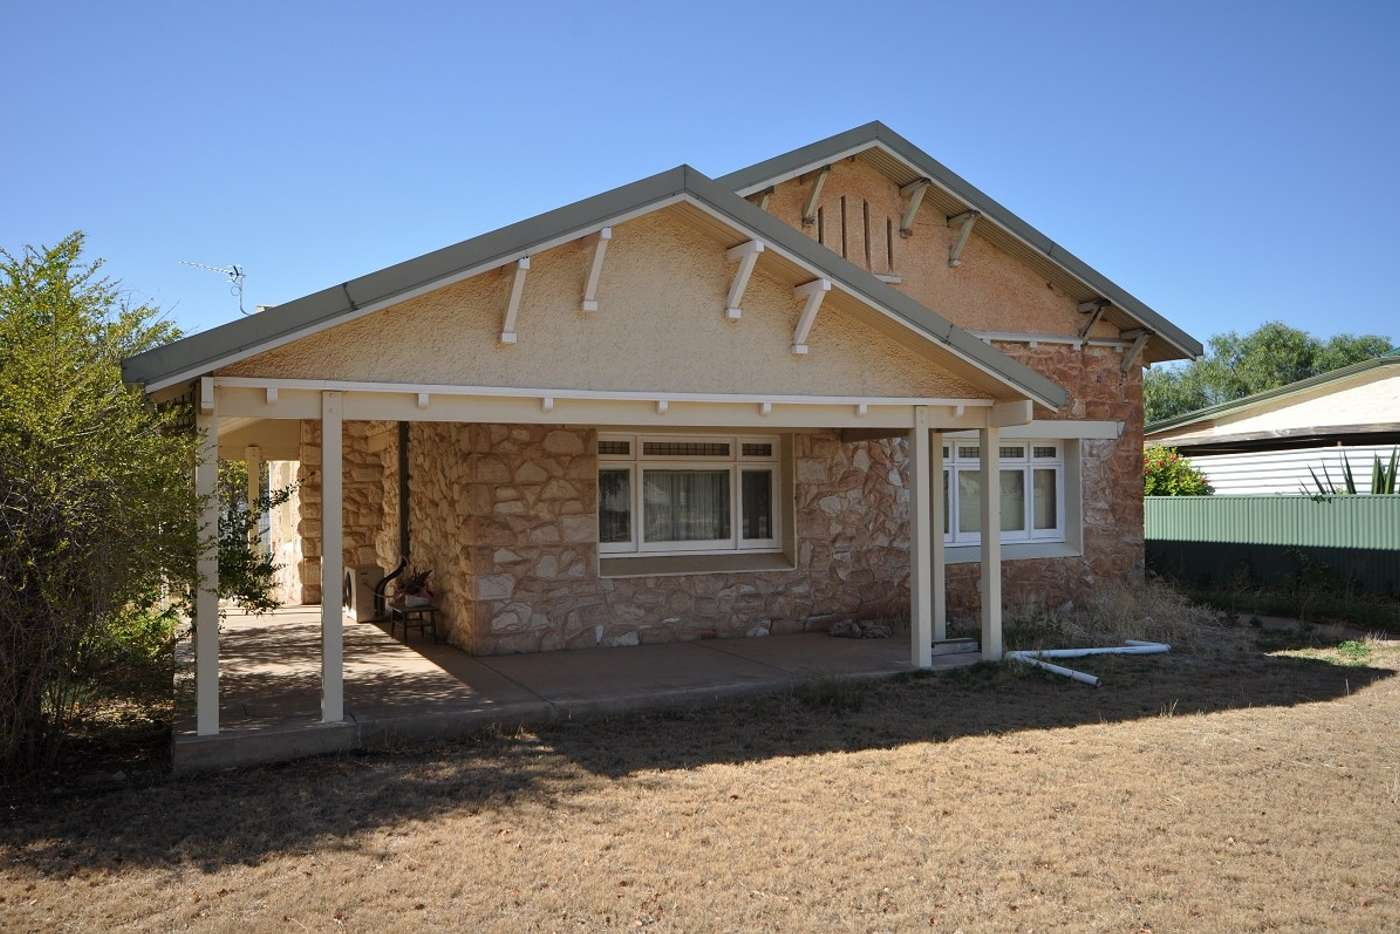 Main view of Homely house listing, 19 First Street, Quorn SA 5433